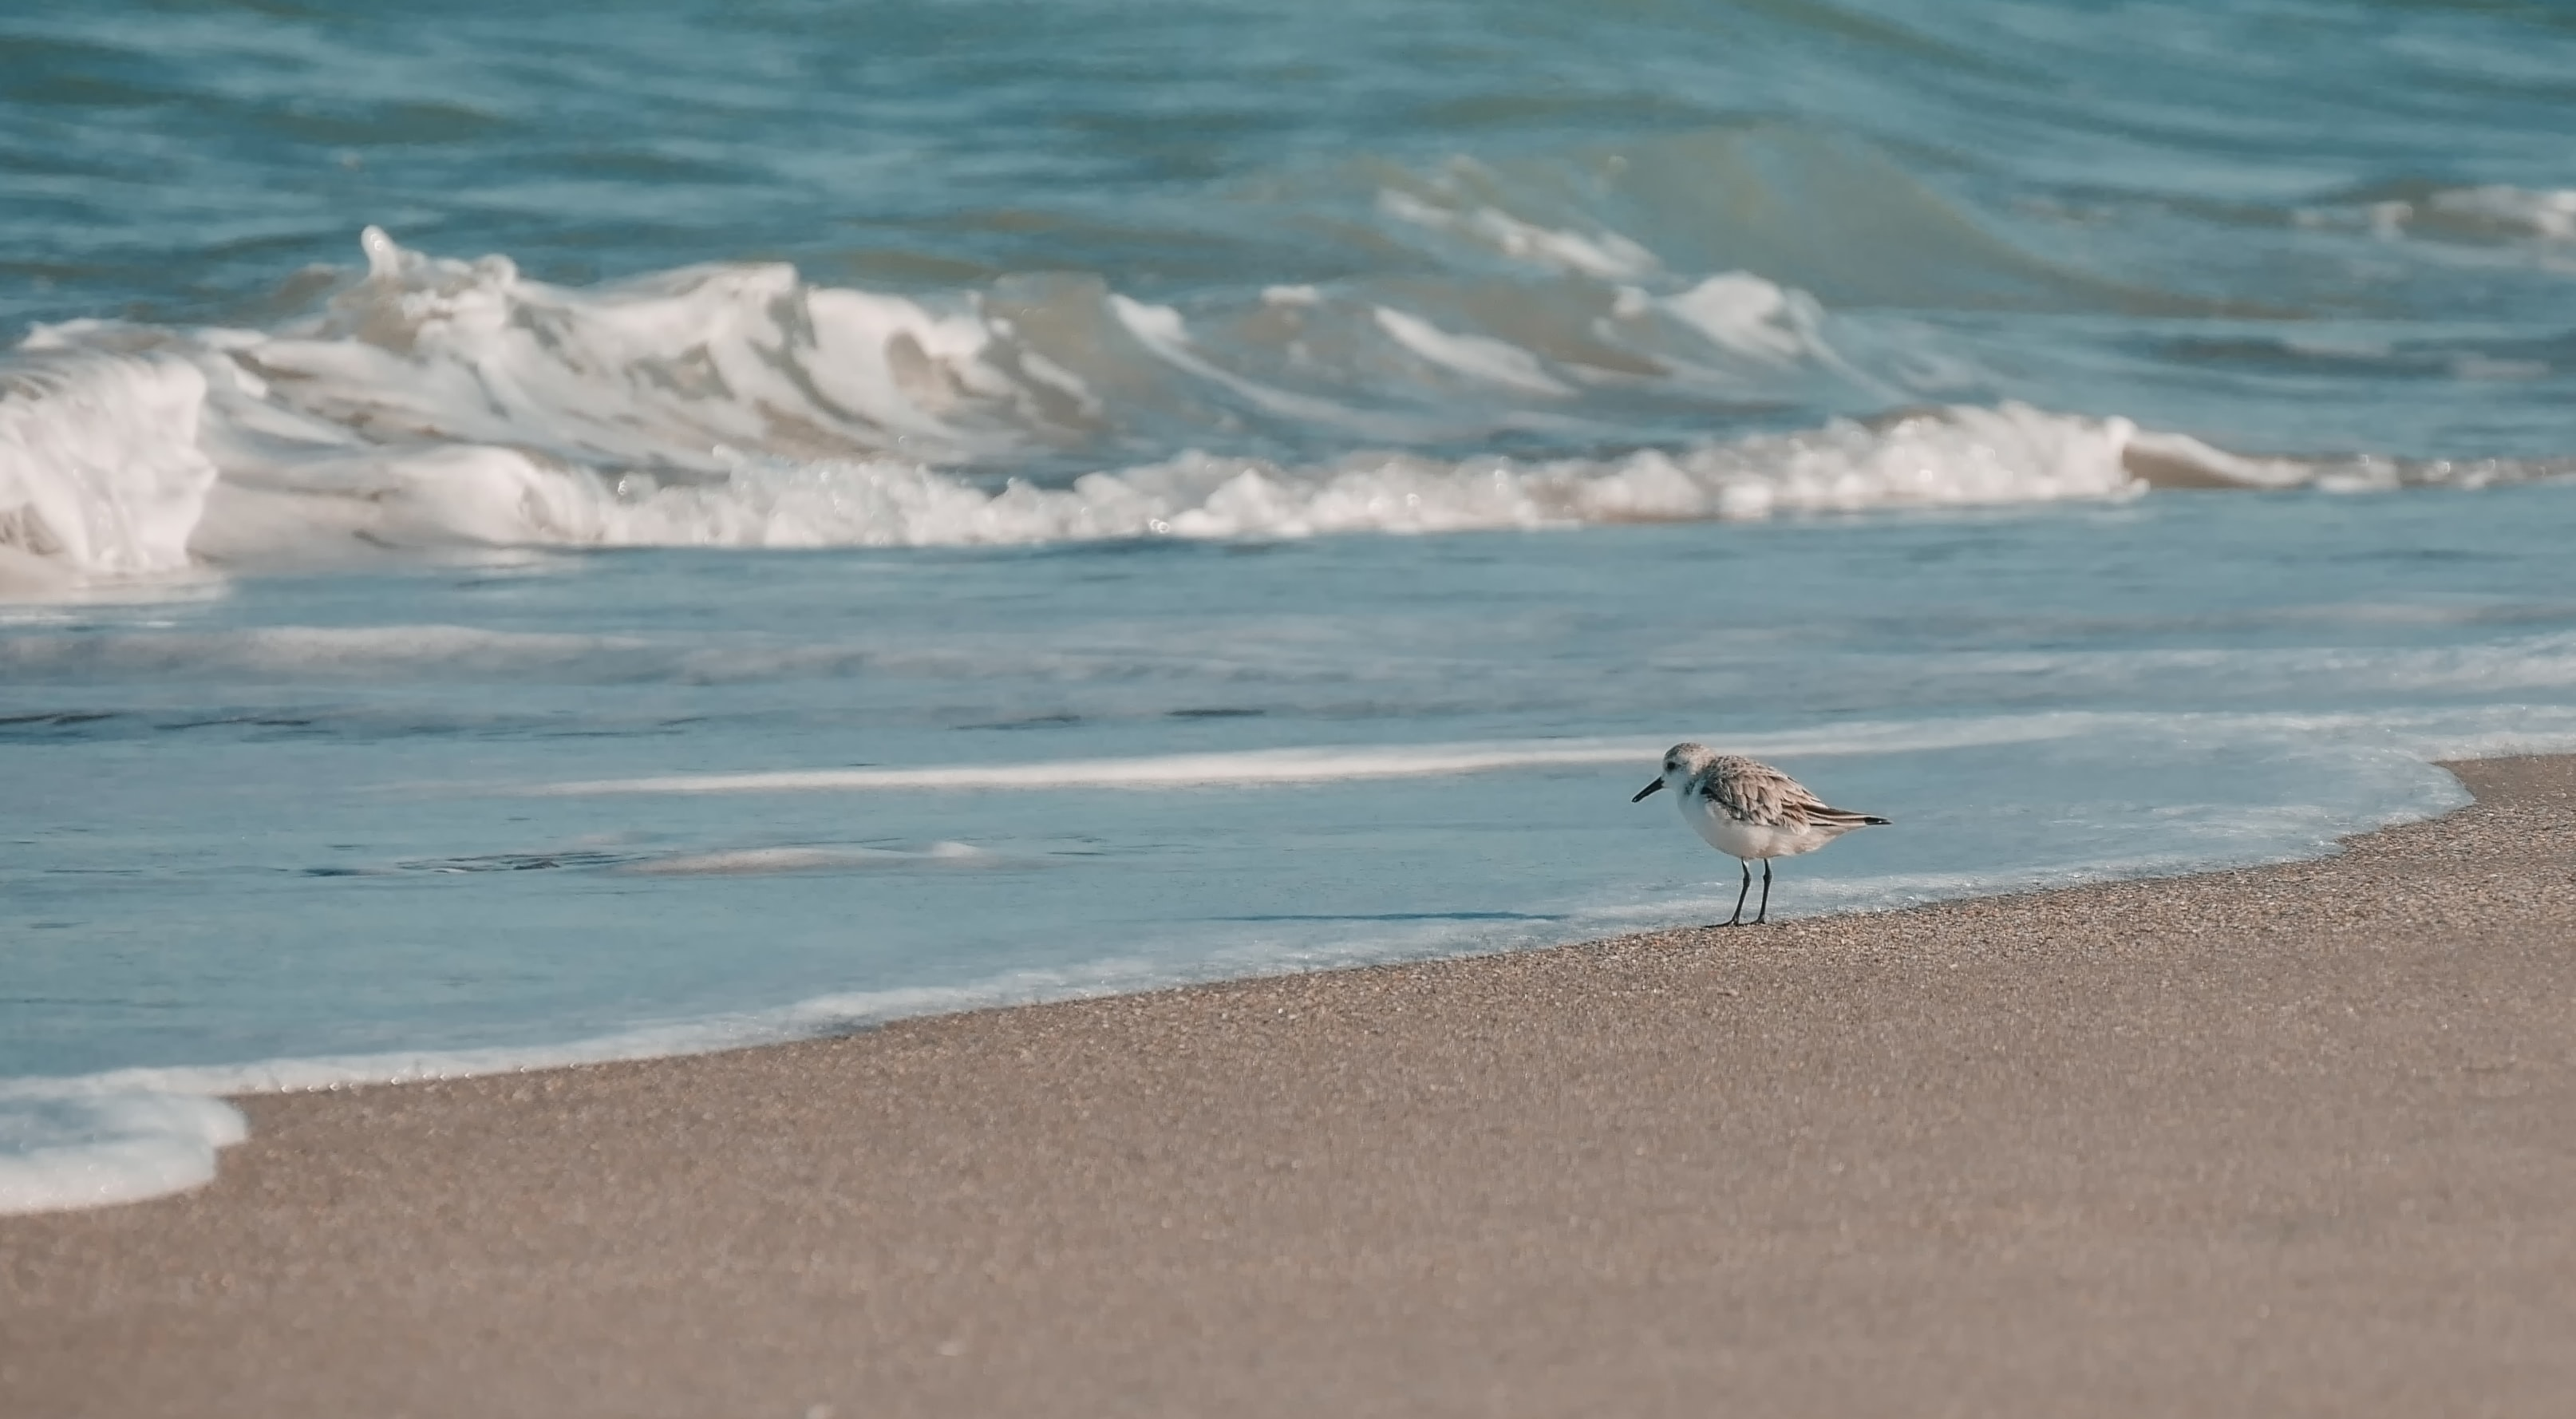 white bird perch on gray sands beside a body of water